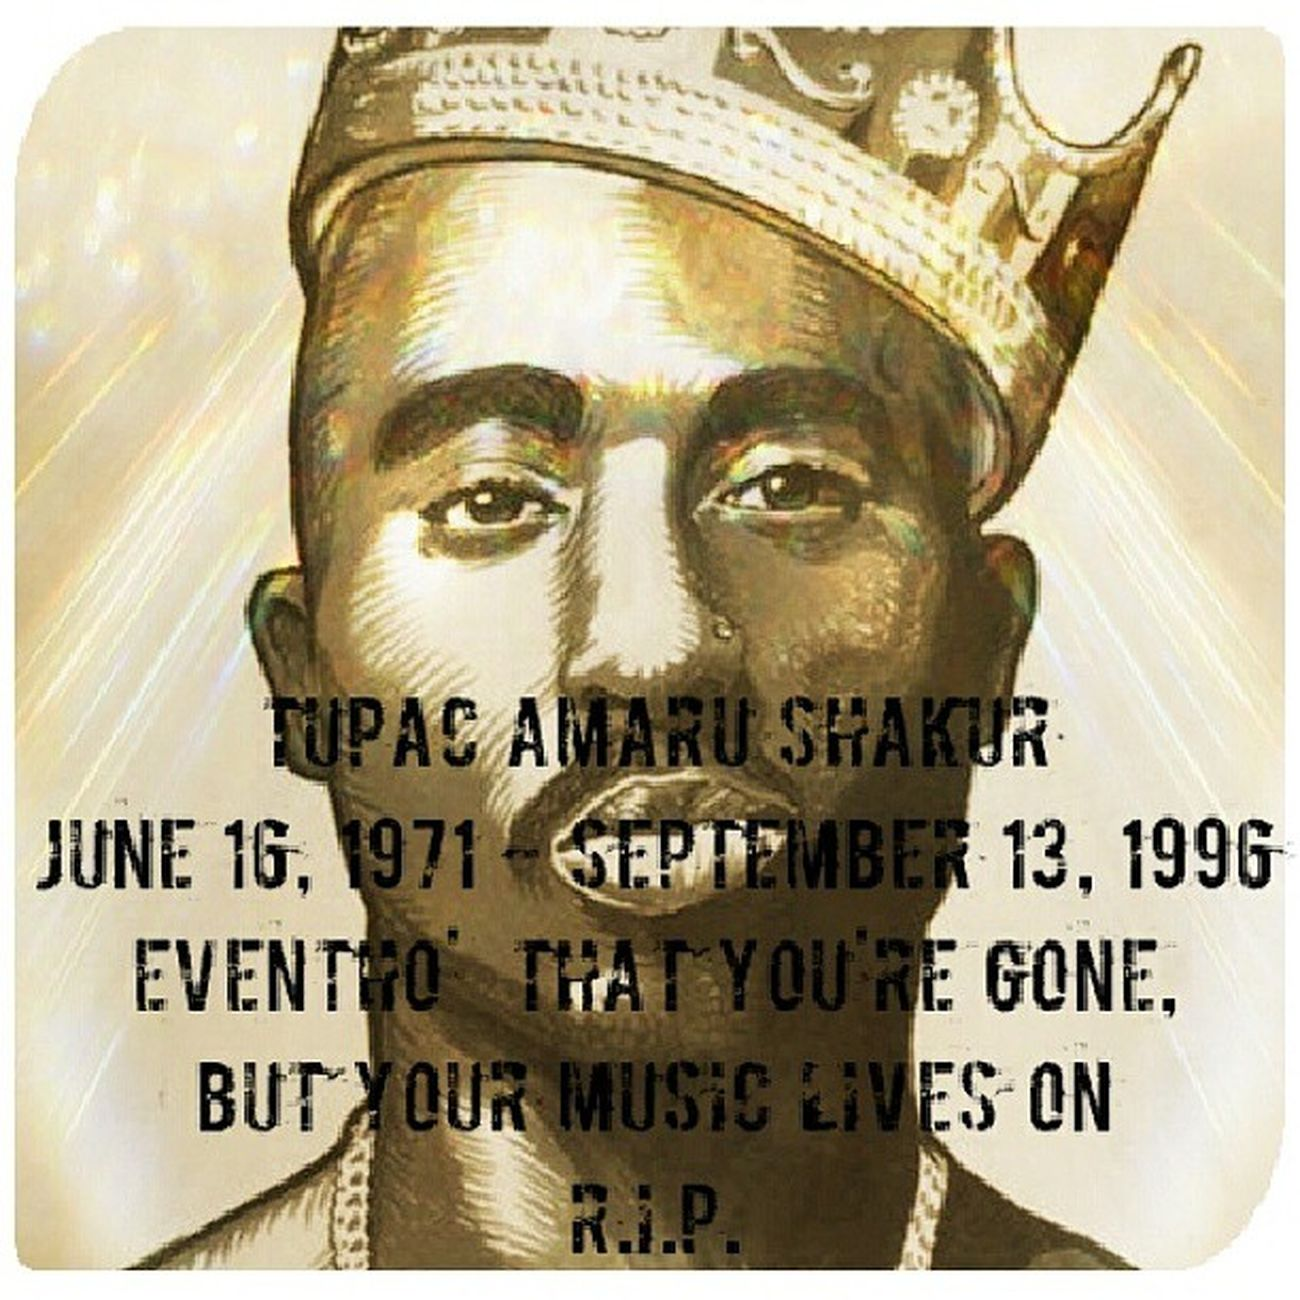 Friday the 13th, in the month of September, 1996; 17 years ago today, an icon left us but his music still lives among us UntilTheEndOfTime . Rip TupacShakur Thegreatestever .